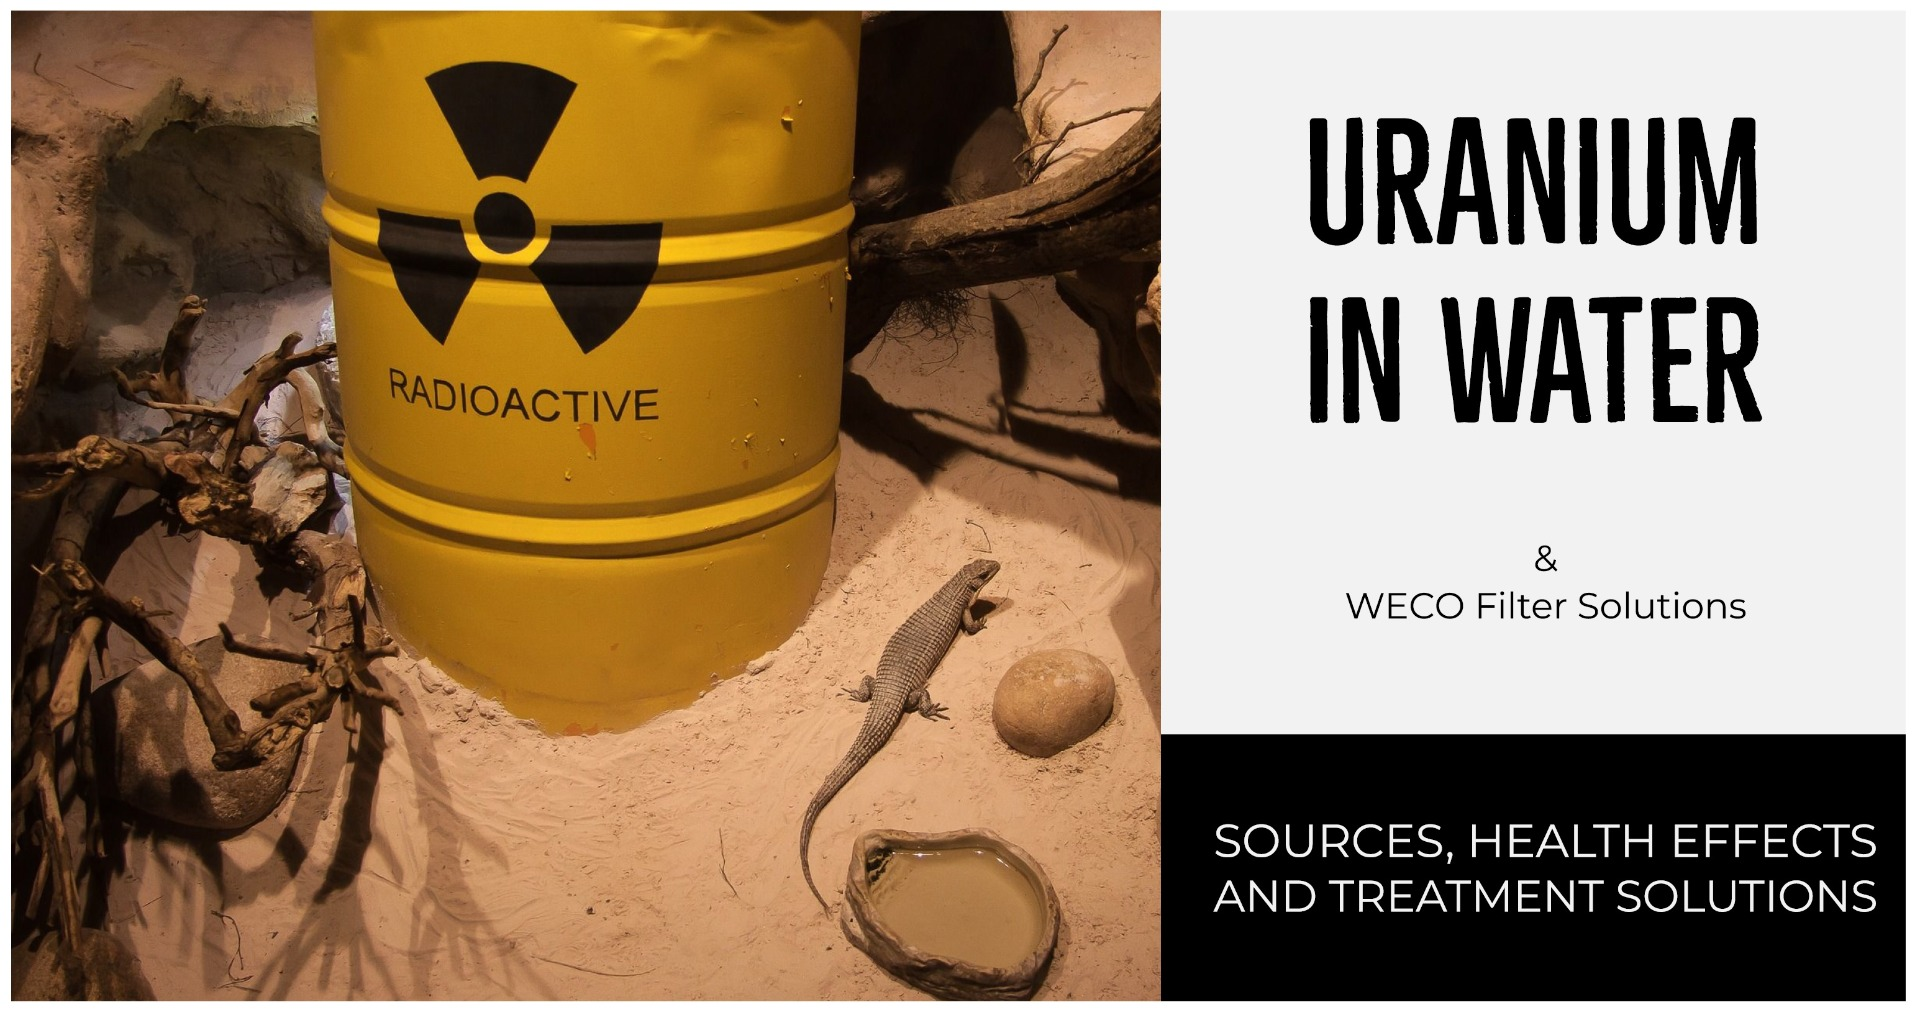 Uranium in water